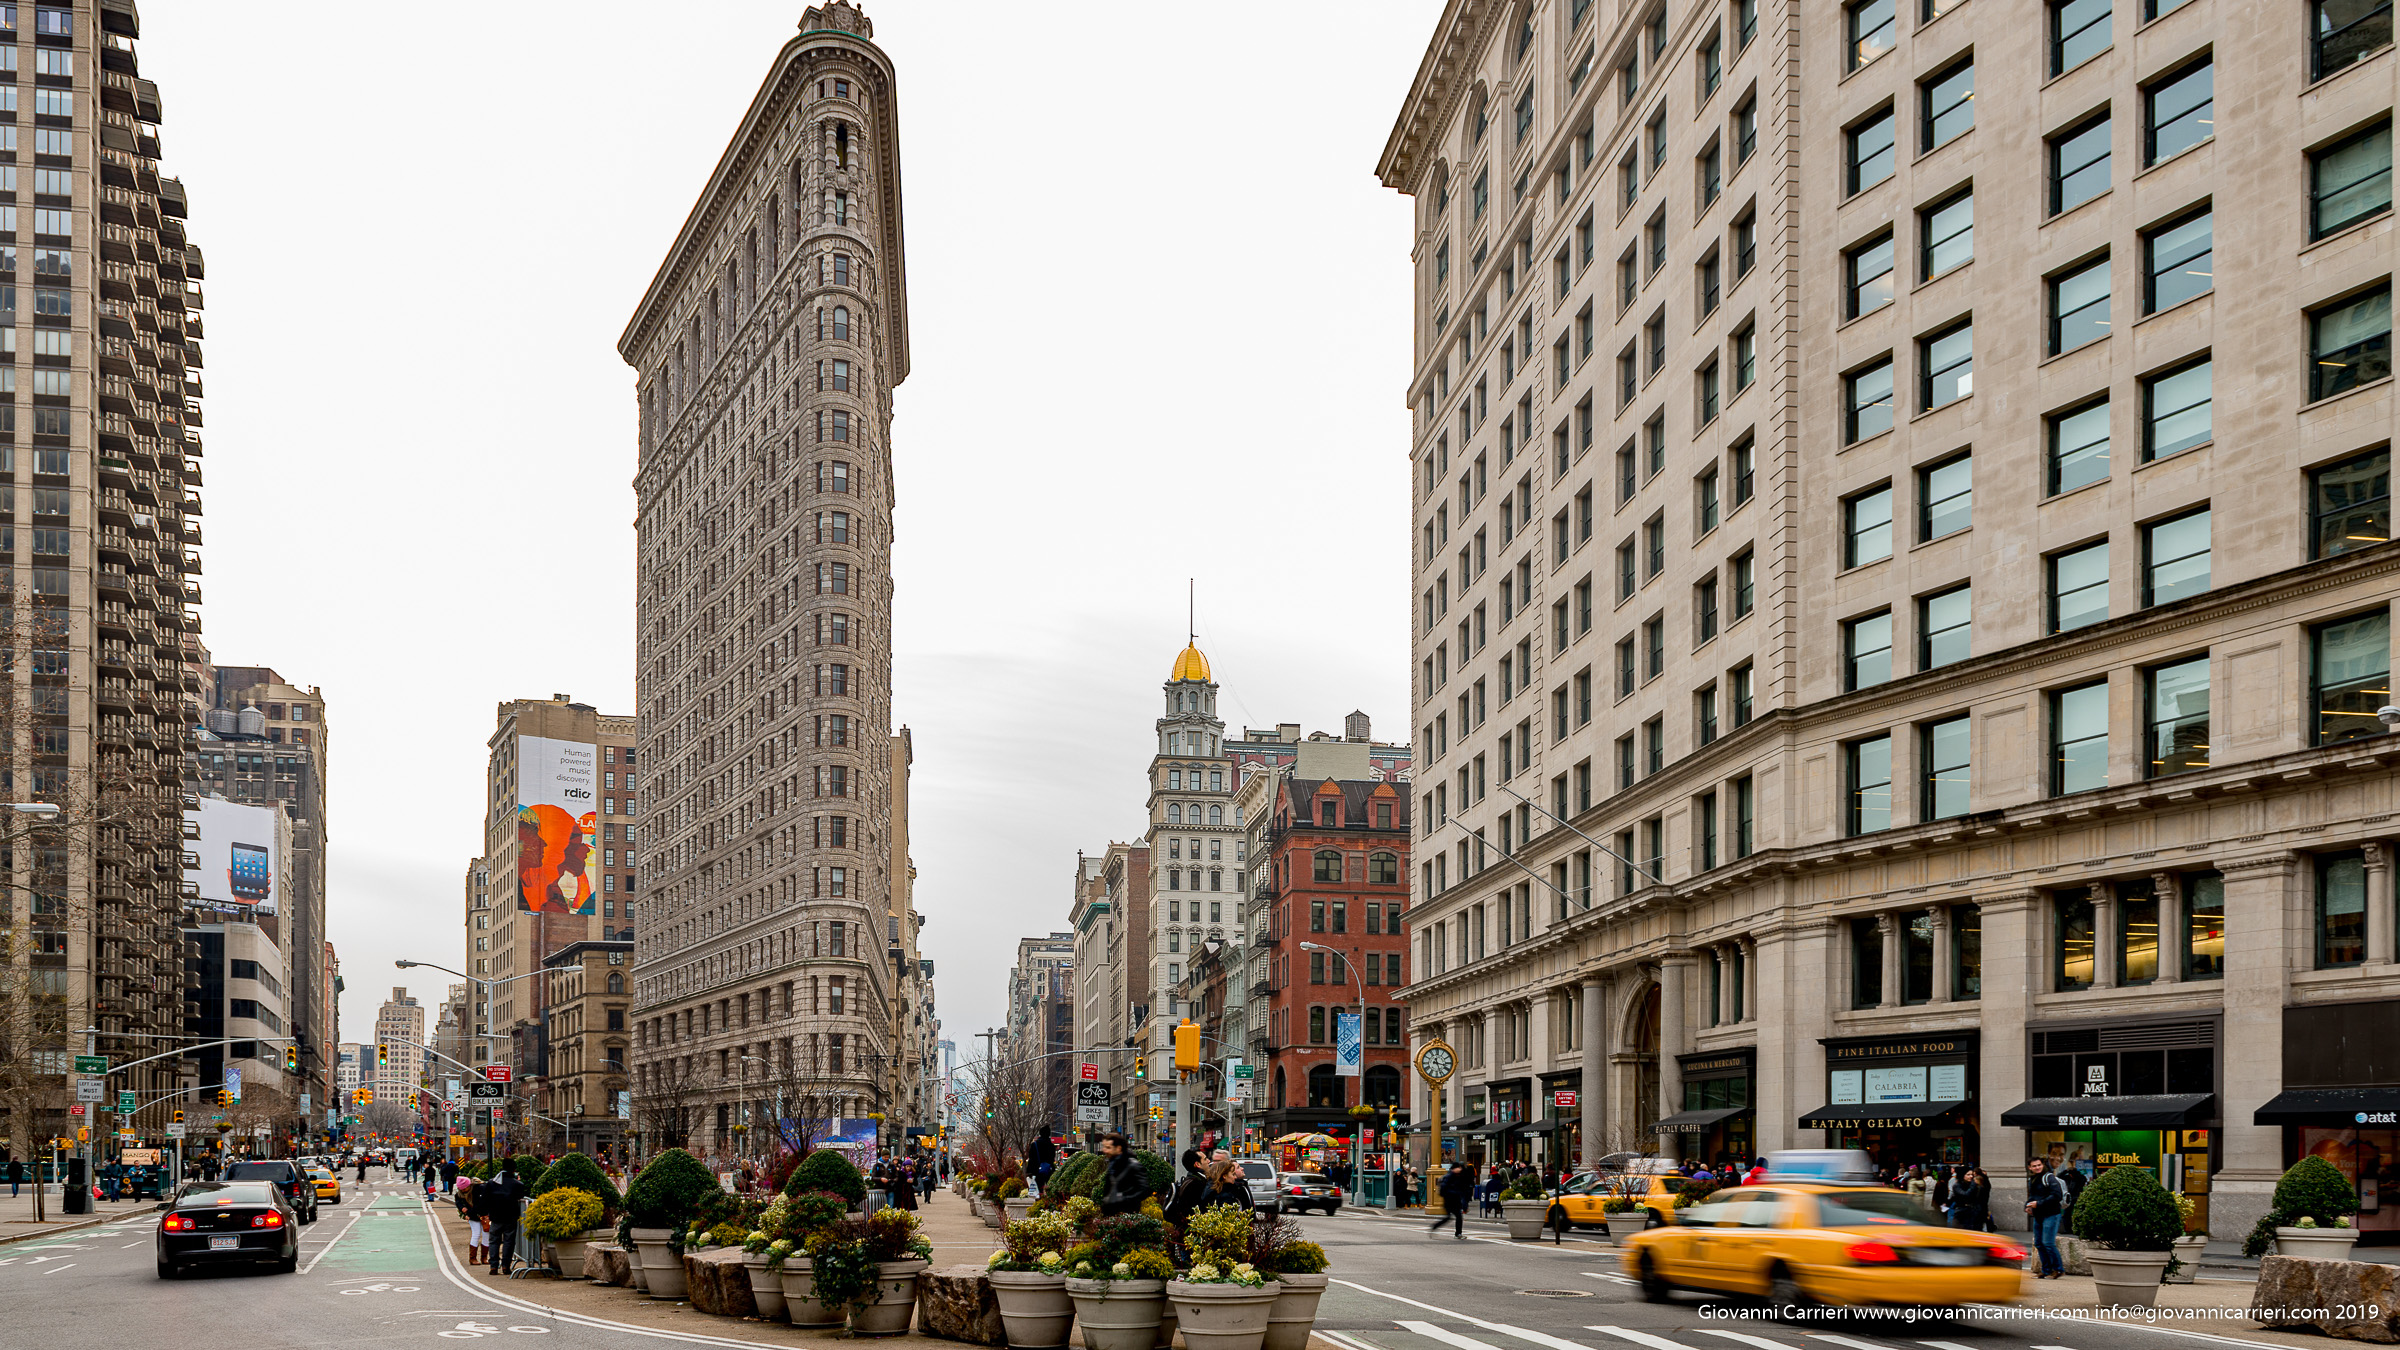 Flat Iron between Broadway and 5th Avenue